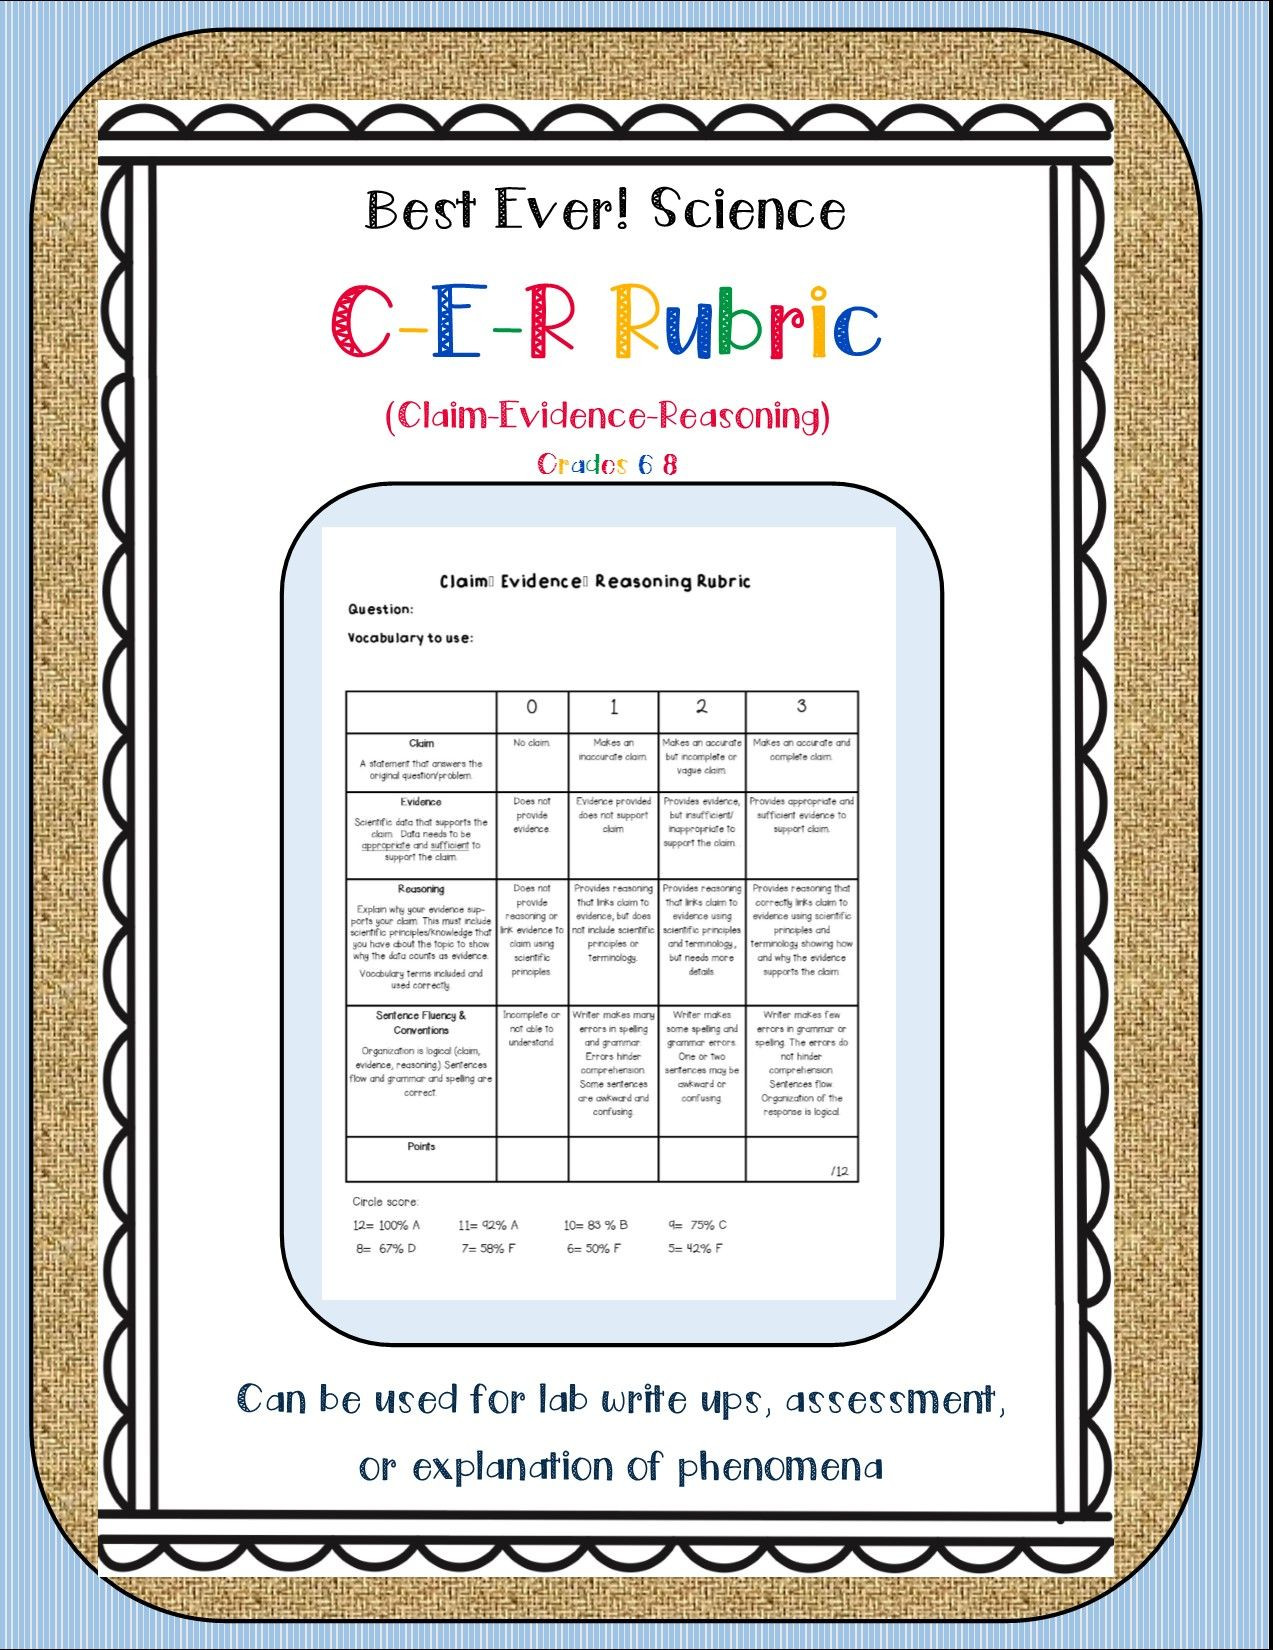 Claim Evidence Reasoning Science Worksheet Best Science Cer Rubric Ever Editable Page Included